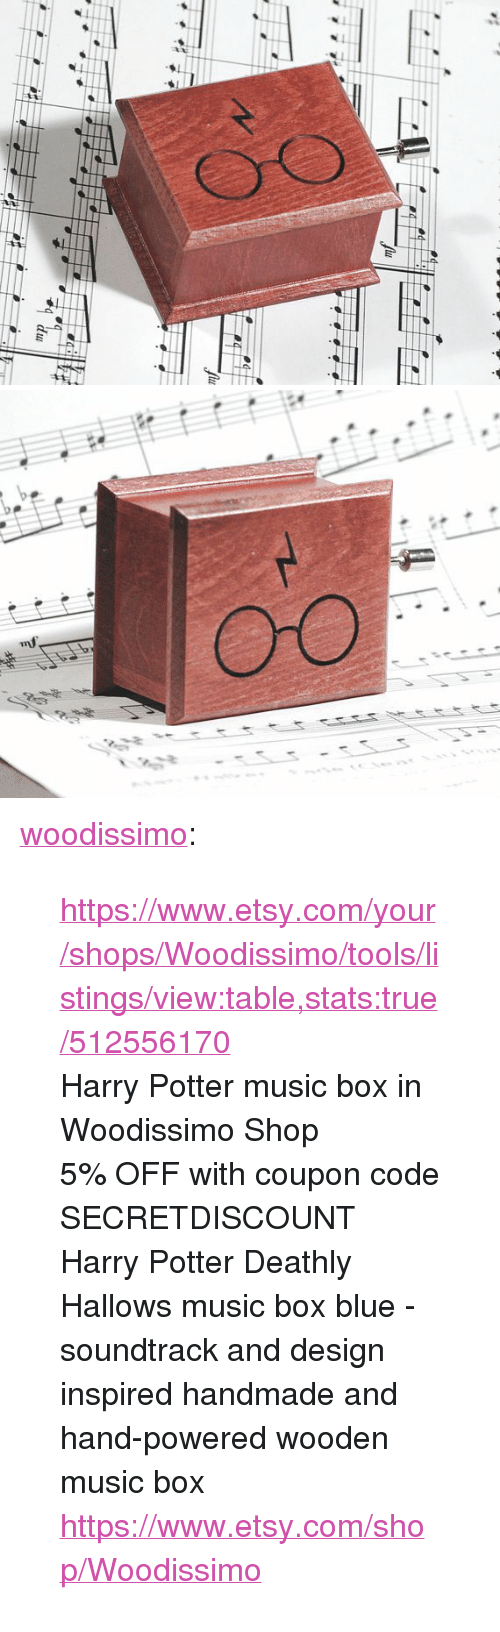 "listings: <p><a href=""https://woodissimo.tumblr.com/post/159857412555/httpswwwetsycomyourshopswoodissimotoolsli"" class=""tumblr_blog"">woodissimo</a>:</p><blockquote> <p><a href=""https://www.etsy.com/your/shops/Woodissimo/tools/listings/view:table,stats:true/512556170"">https://www.etsy.com/your/shops/Woodissimo/tools/listings/view:table,stats:true/512556170</a></p> <p>Harry Potter music box in Woodissimo Shop</p> <p>5% OFF with coupon code SECRETDISCOUNT<br/>Harry Potter Deathly Hallows music box blue - soundtrack and design inspired handmade and hand-powered wooden music box <a href=""https://www.etsy.com/shop/Woodissimo"">https://www.etsy.com/shop/Woodissimo</a><br/></p> </blockquote>"